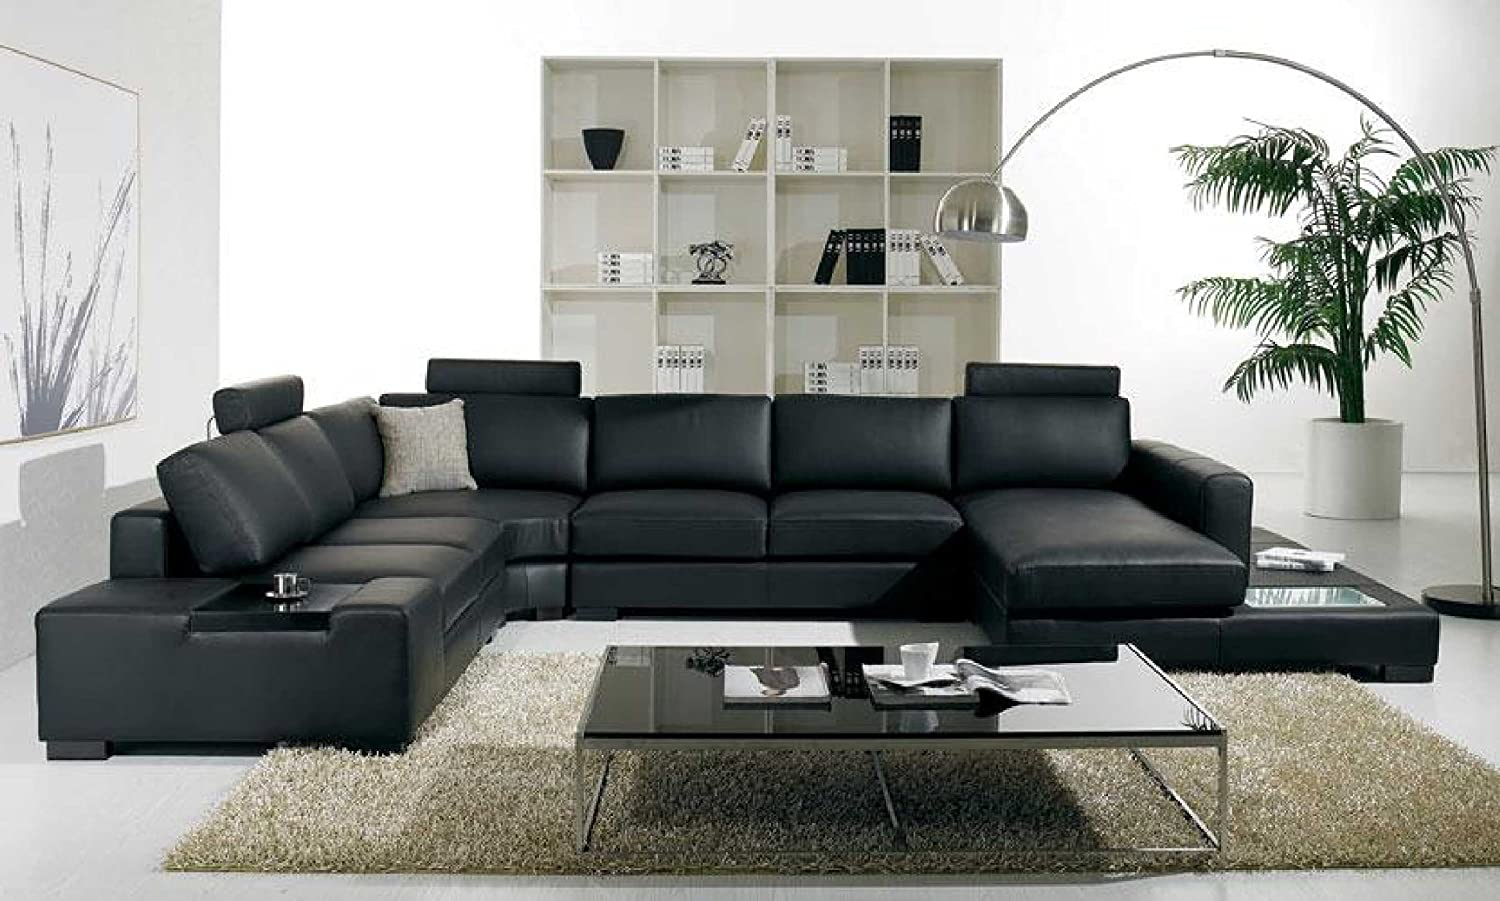 Amazon.com: T35 - Black Bonded Leather Sectional Sofa with Headrests ...